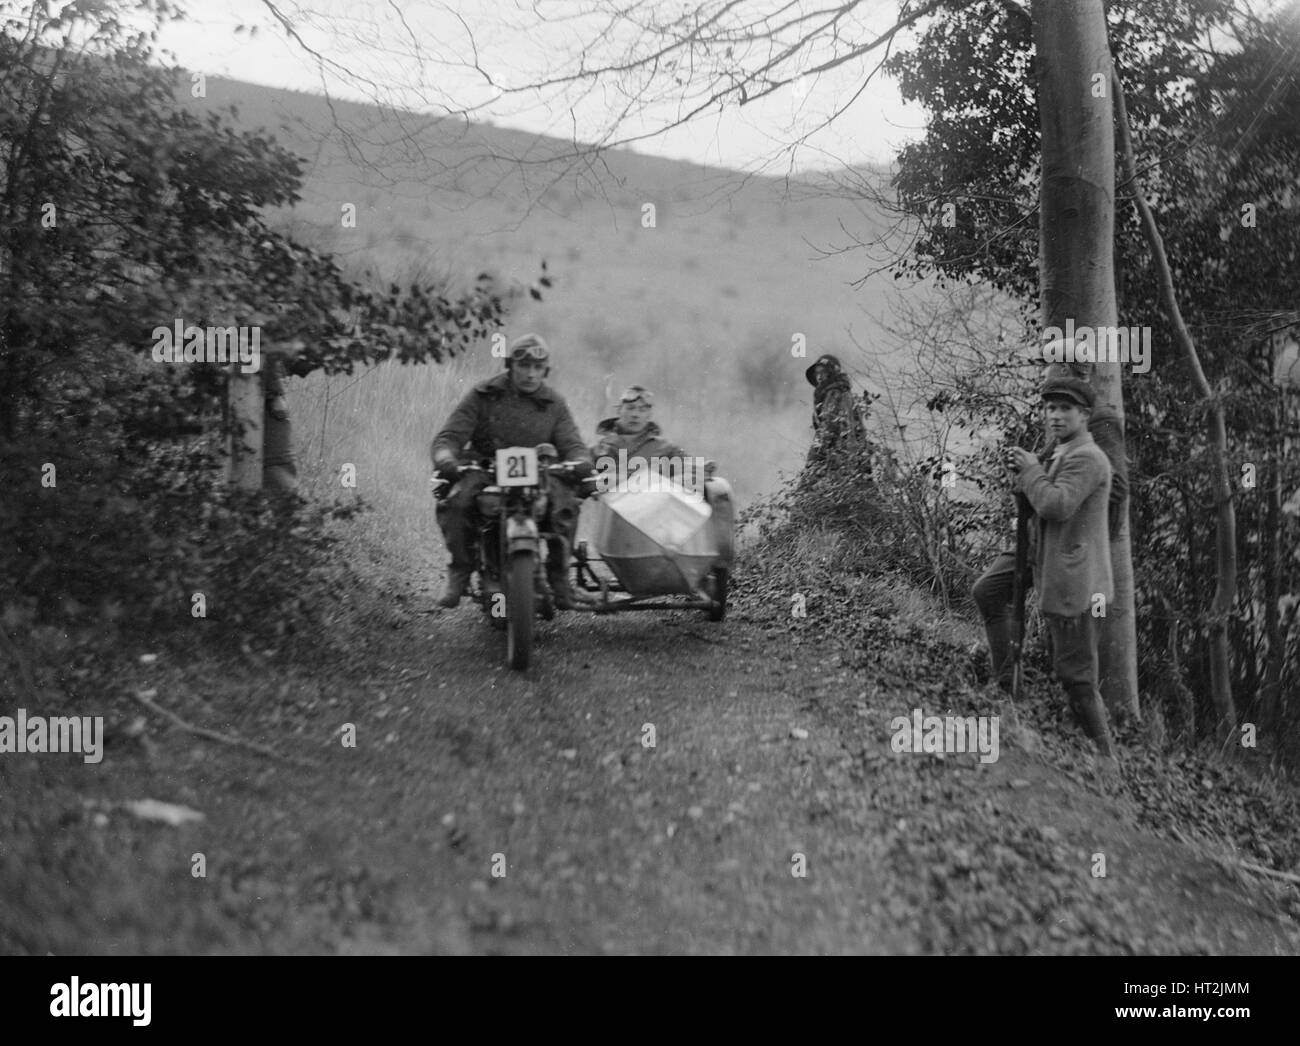 Motorcycle and sidecar competing in a motoring trial